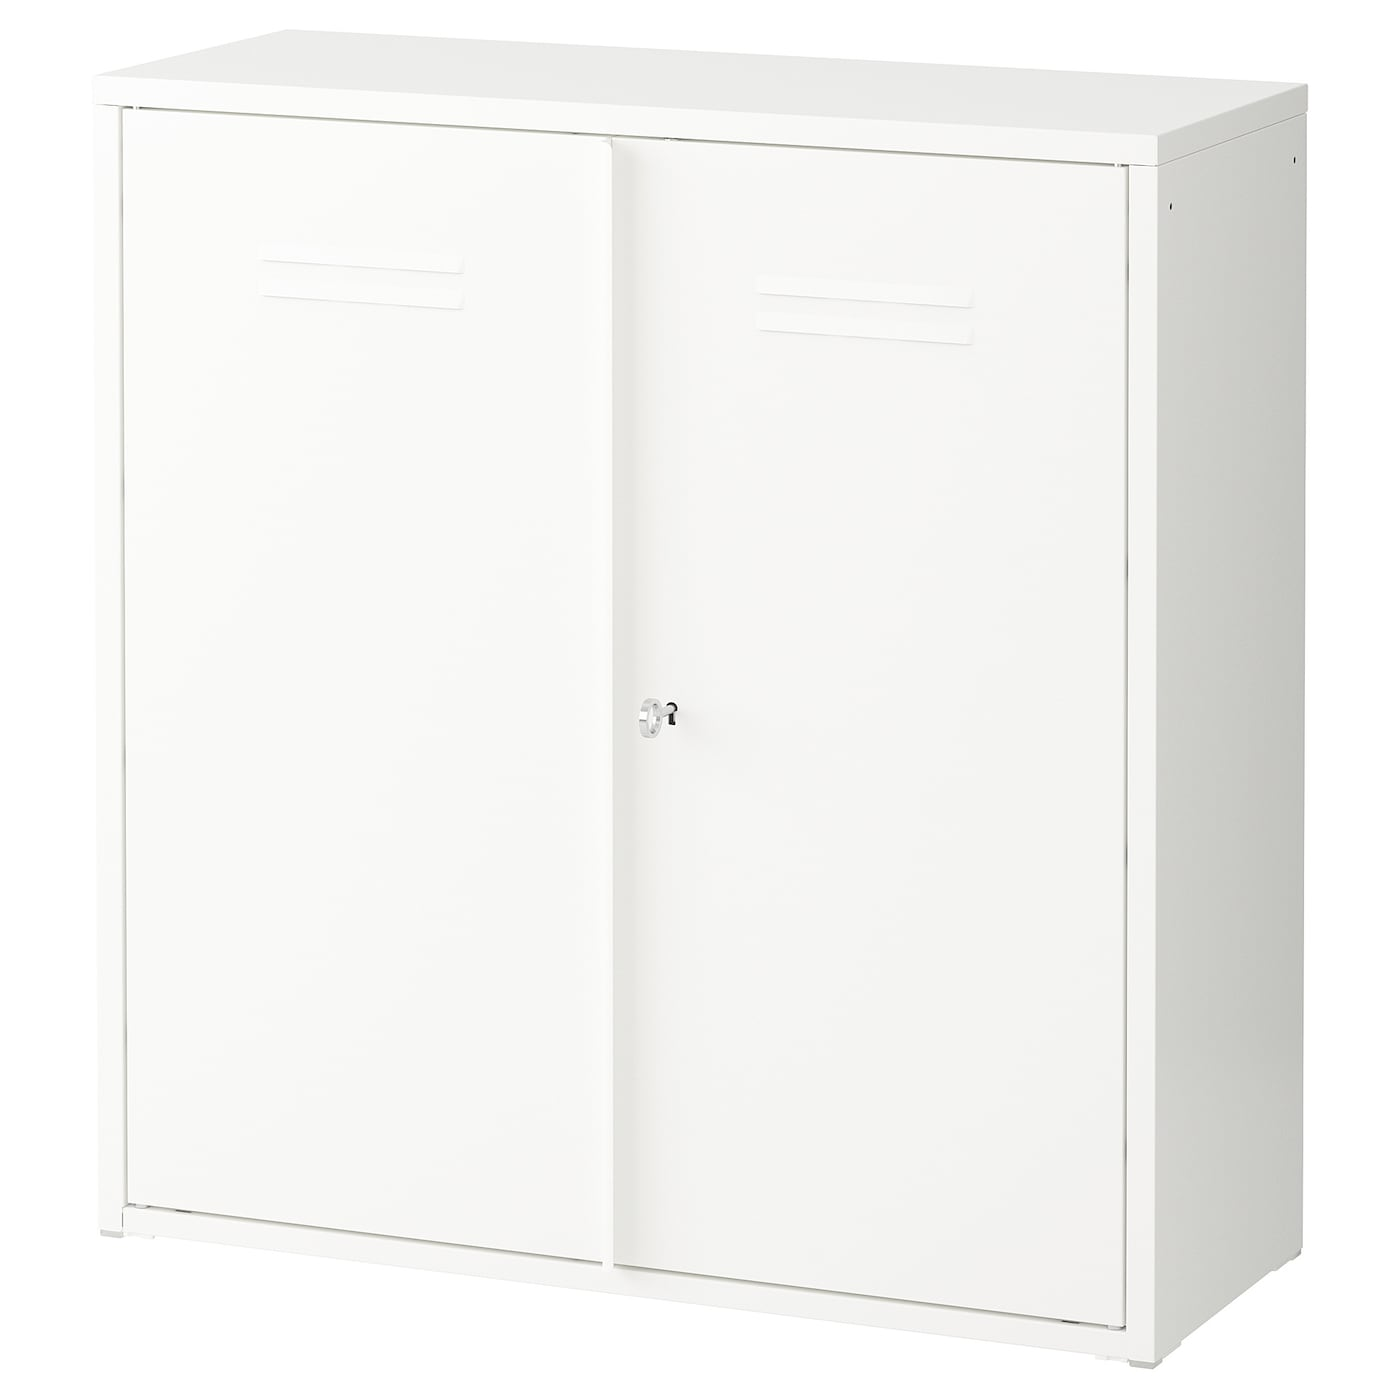 IKEA IVAR cabinet with doors You can adapt the inside when needed by moving the shelf up or down.